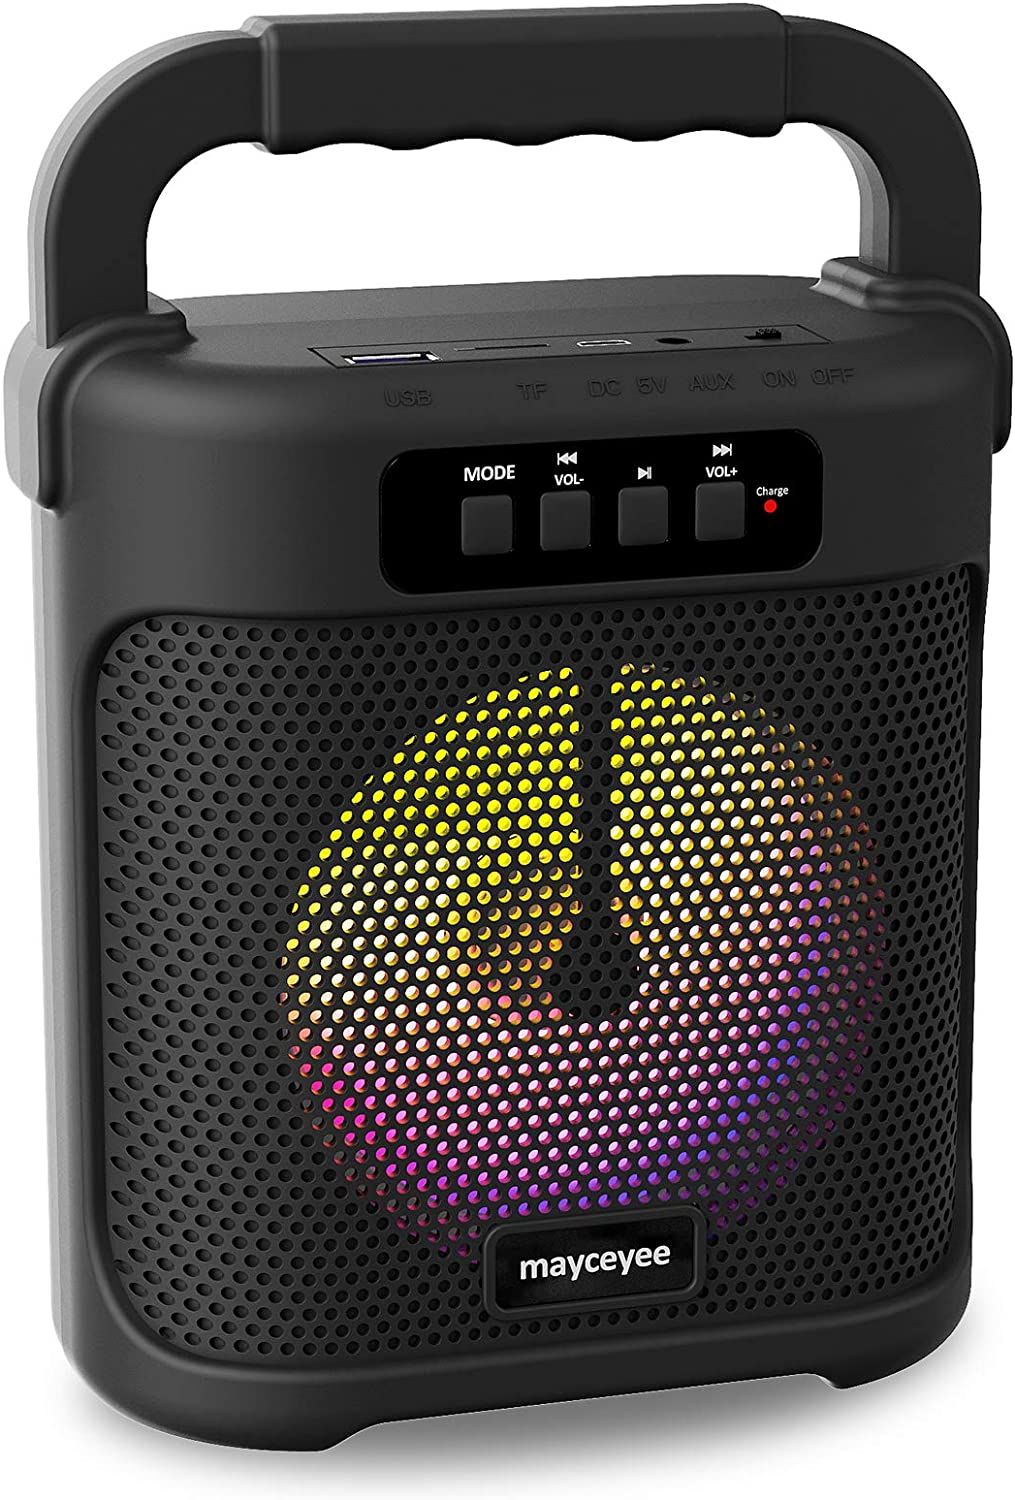 mayceyee Portable Bluetooth Speaker with FM Radio, Rechargeable Wireless Speaker with Line in, USB Disk and Micro SD Input, Stereo Speaker with Flashing LED Light for Indoor and Outdoor Party (Black)